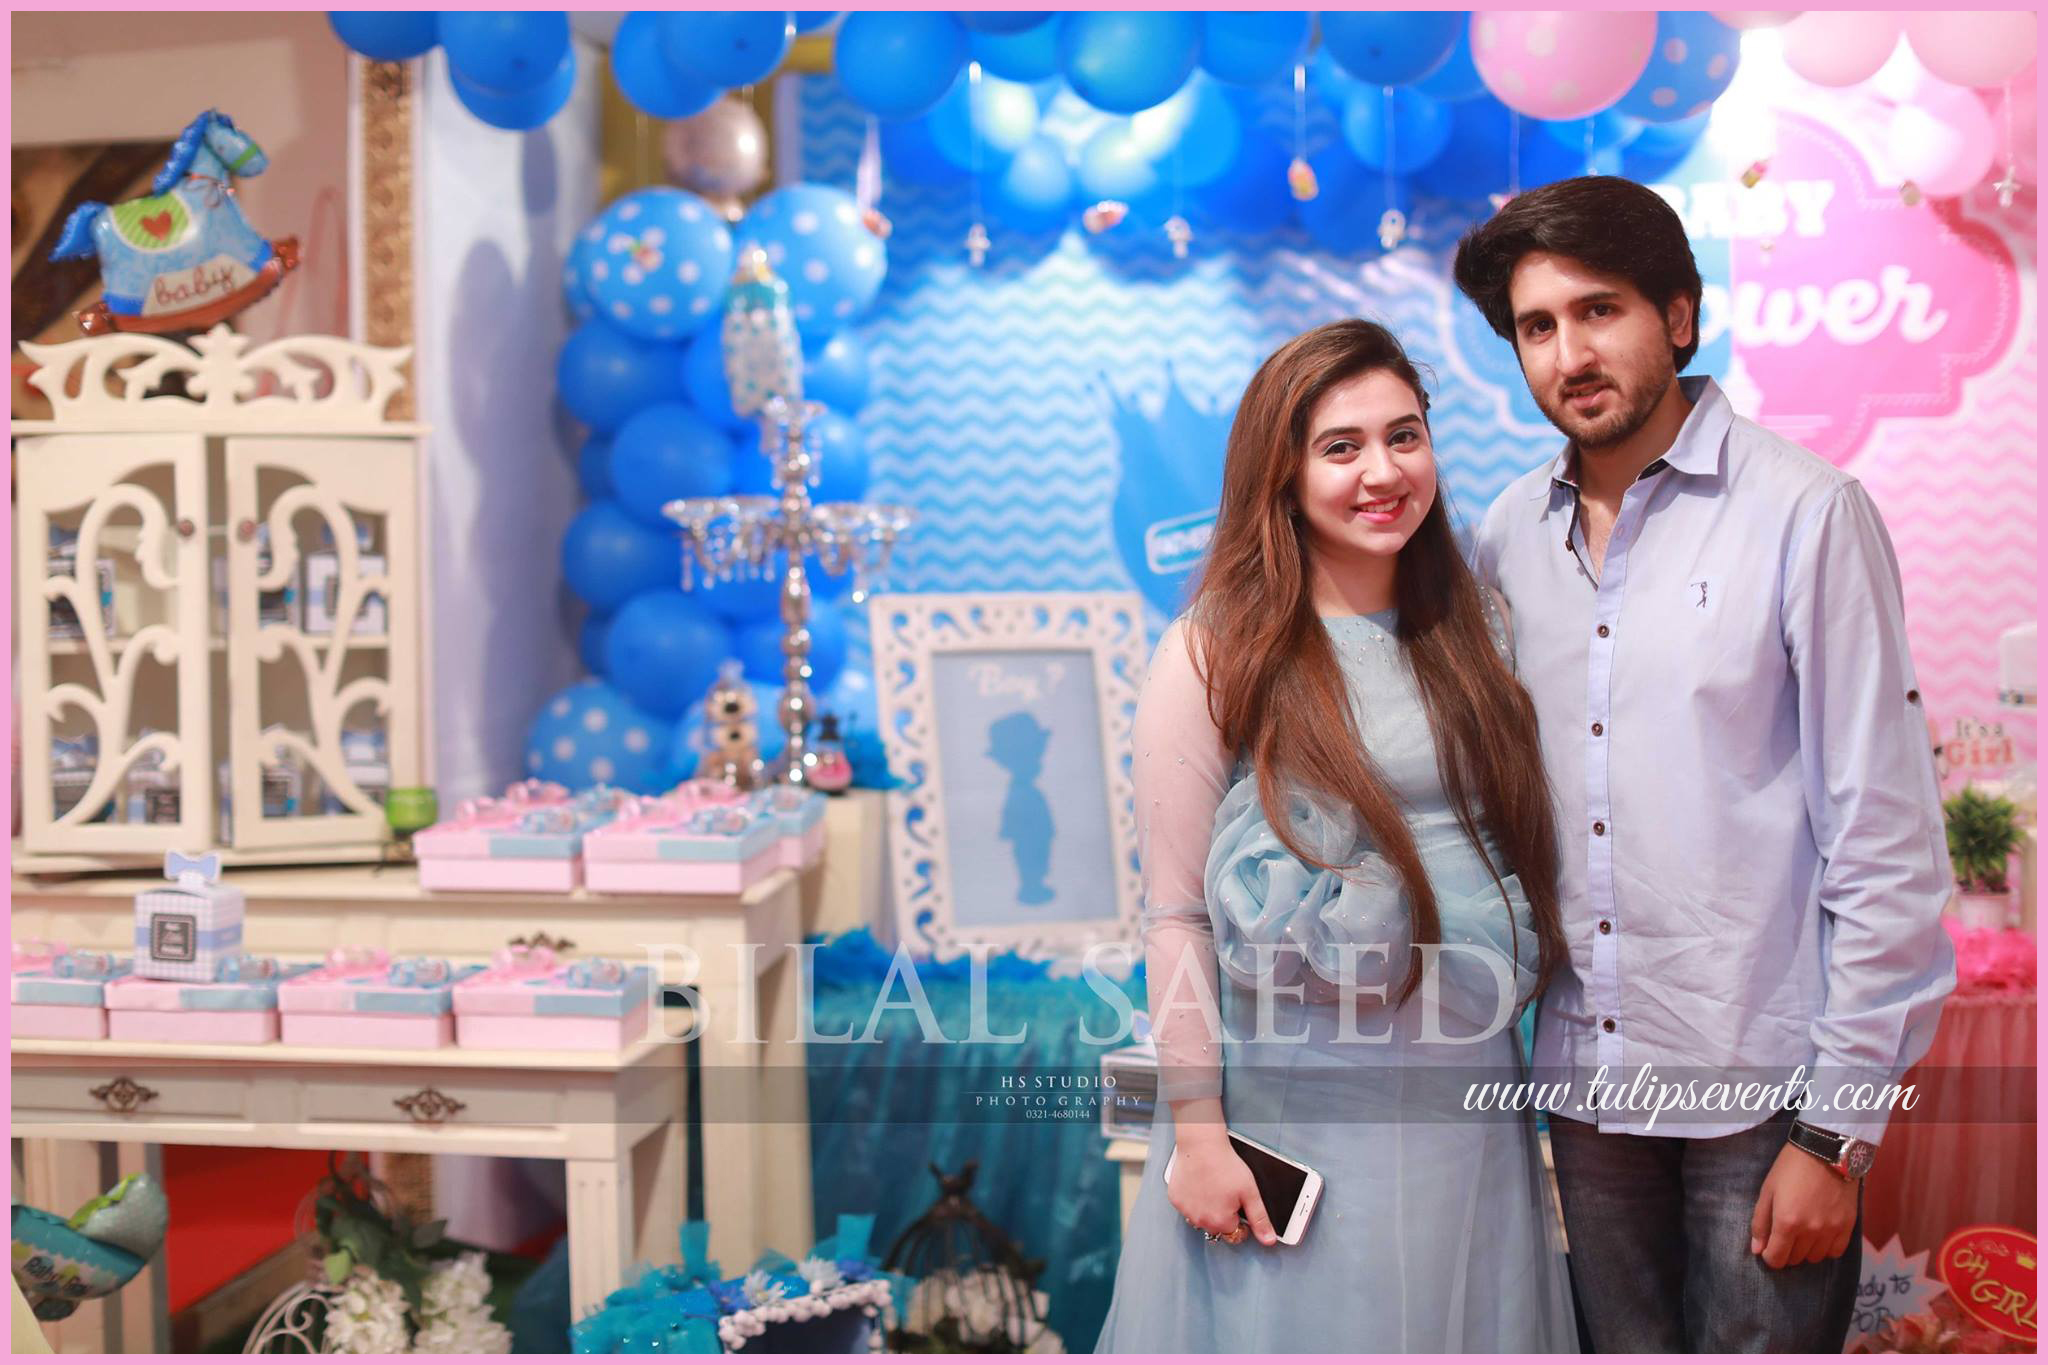 Baby Shower Party Decoration Ideas Tulips Events In Pakistan 1